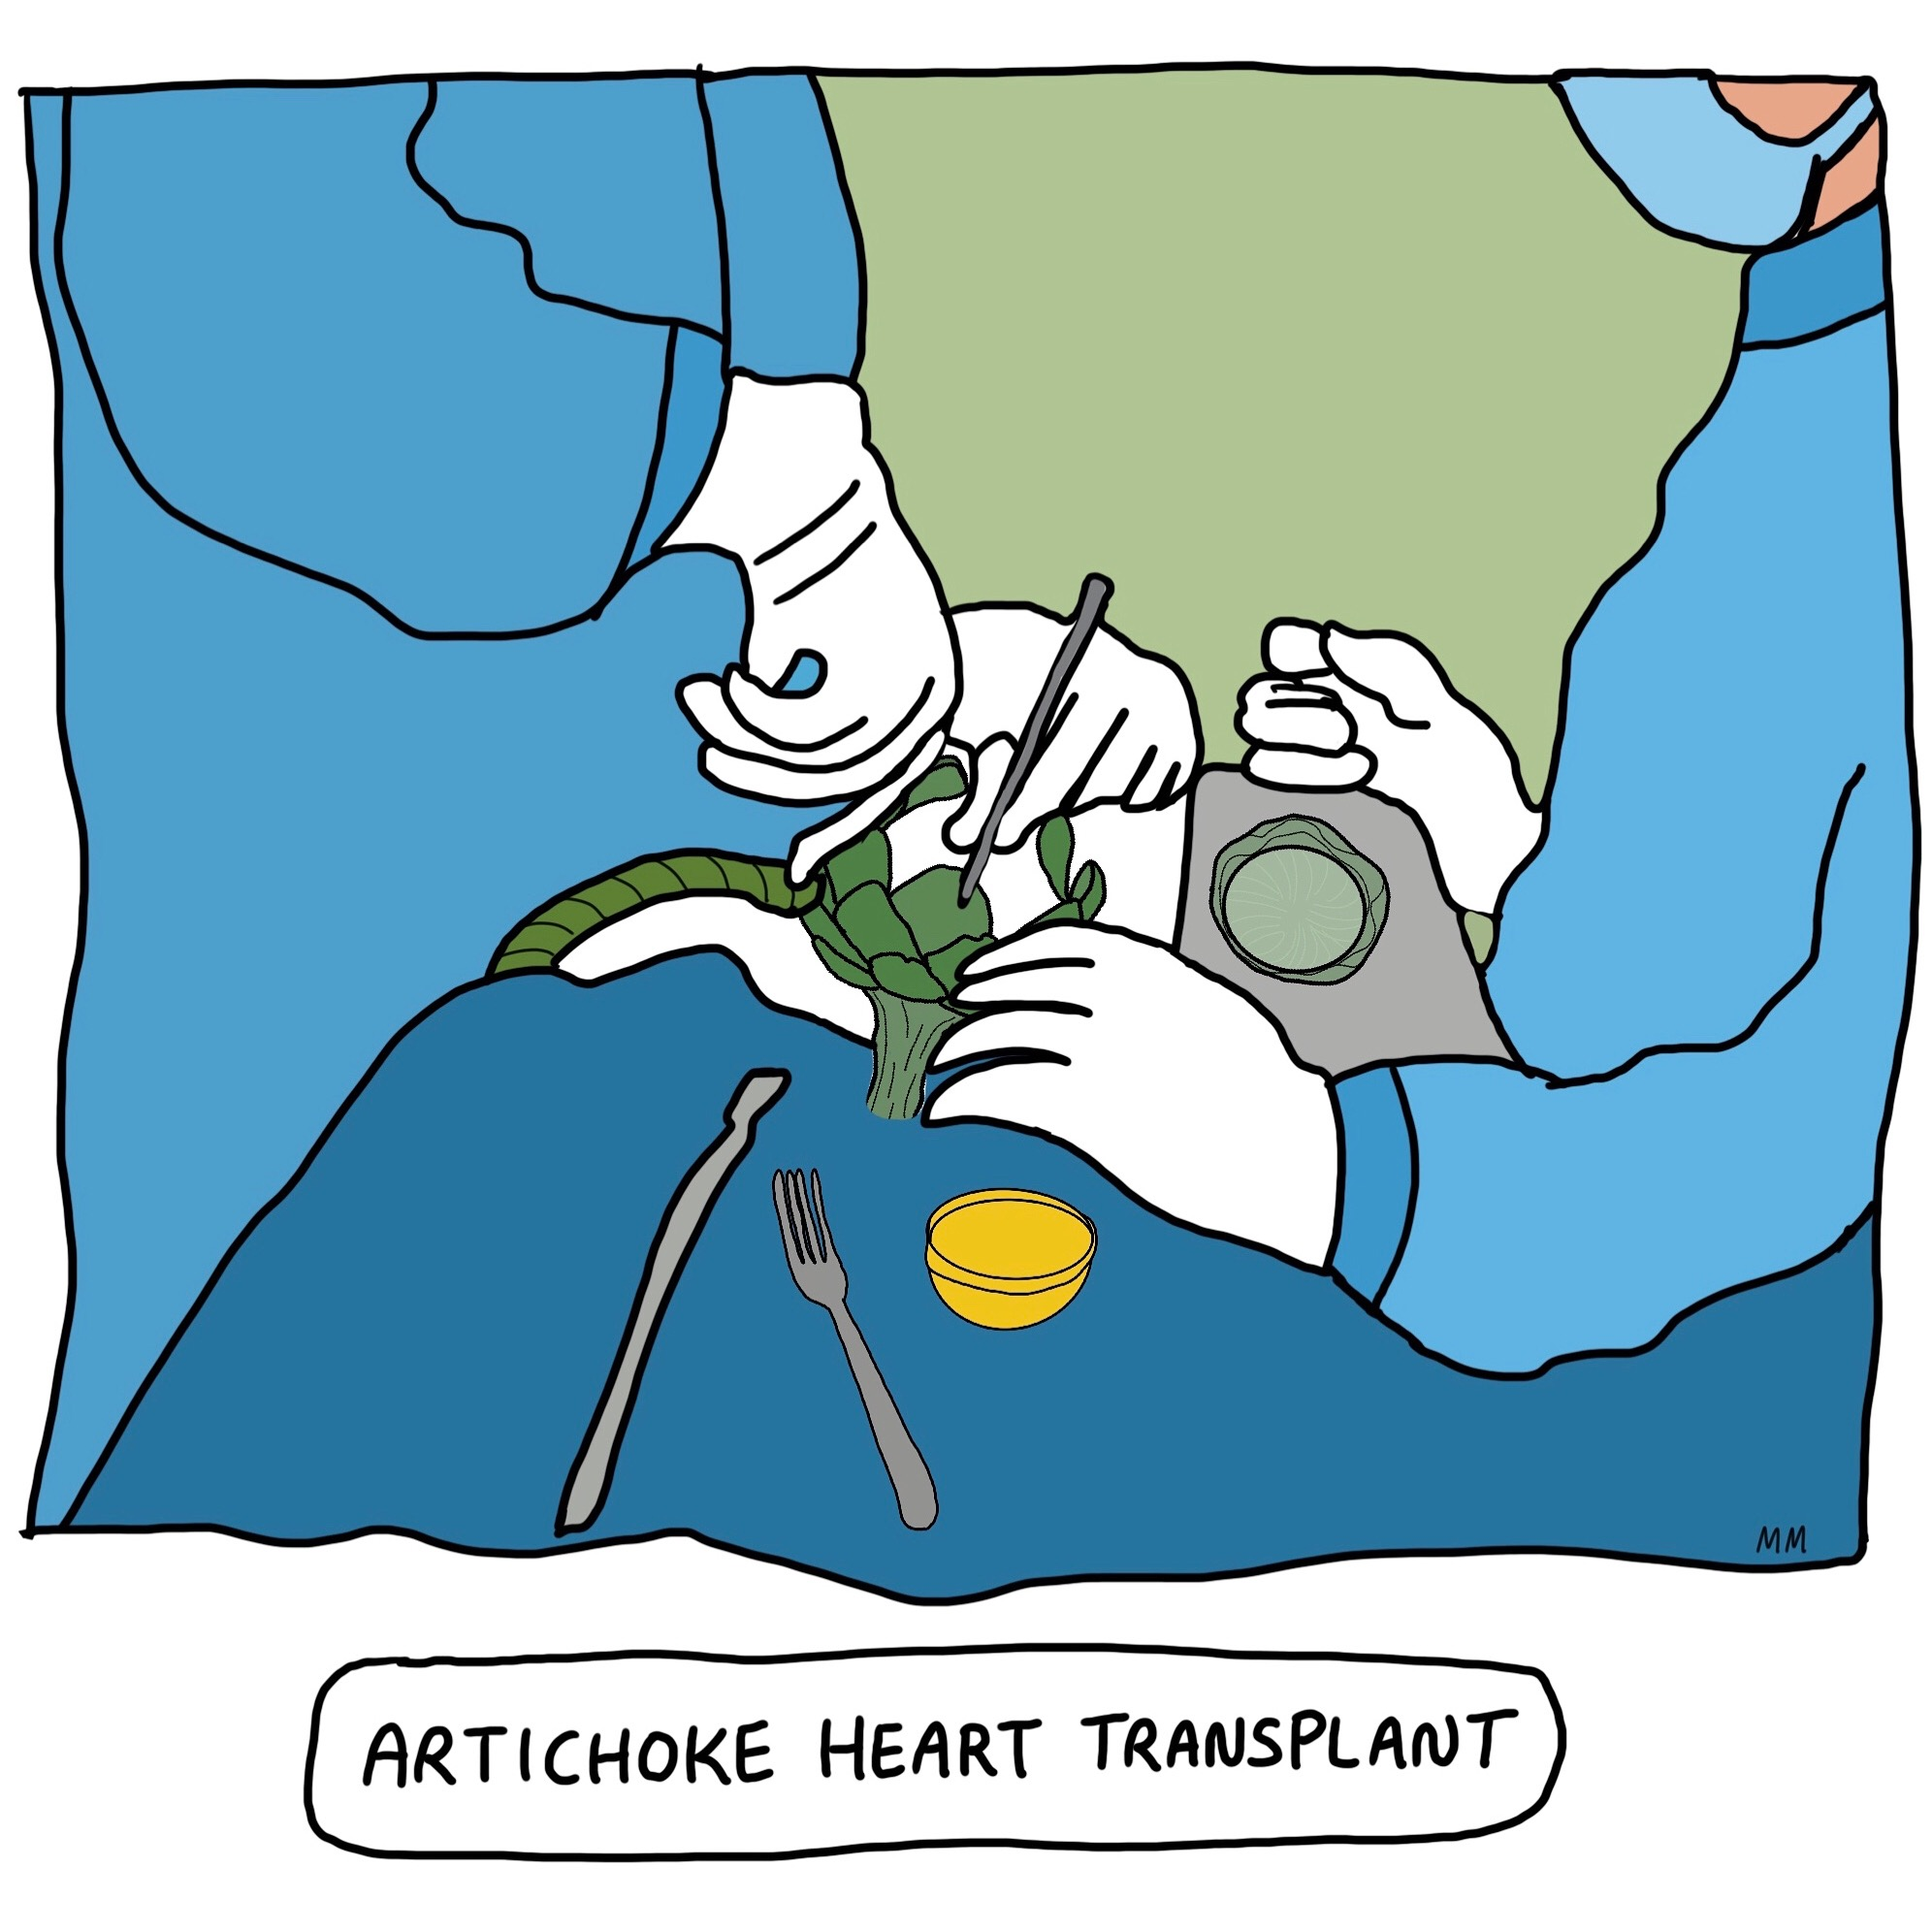 Artichoke Heart Surgery